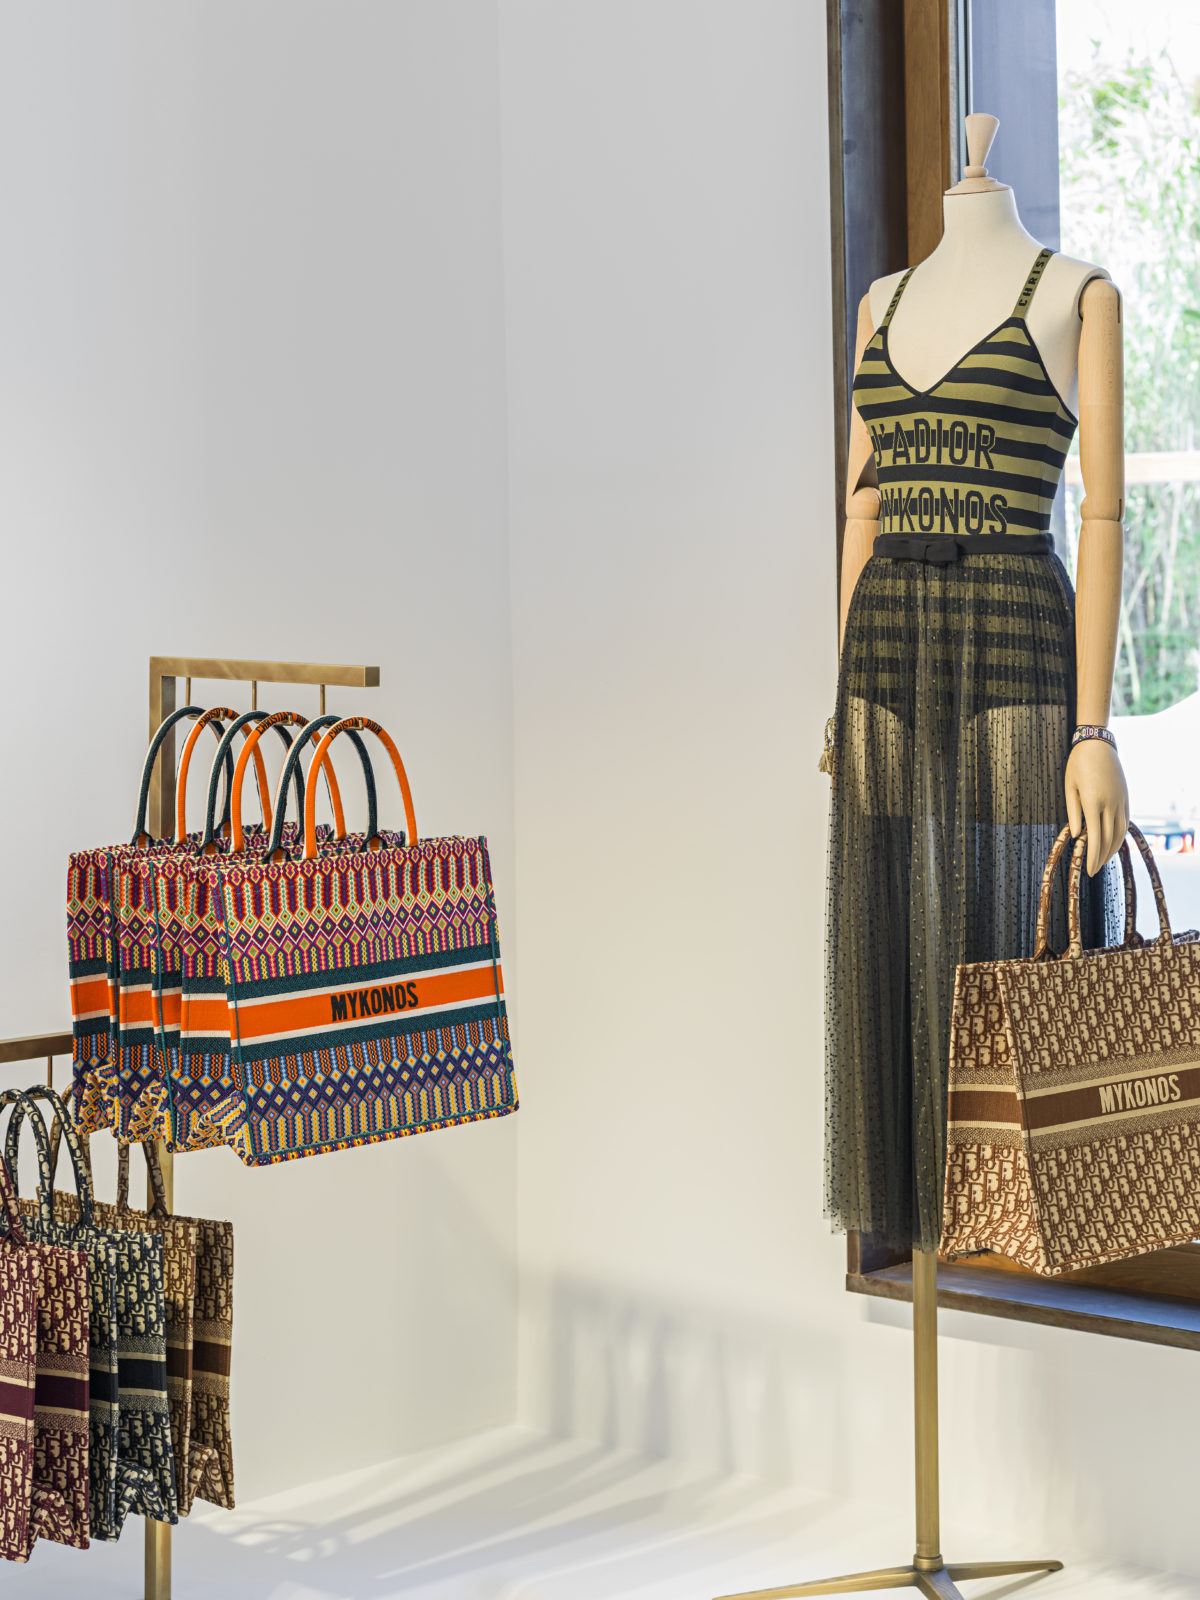 Dior Pop up Mykonos Summer   The Luxe Diary